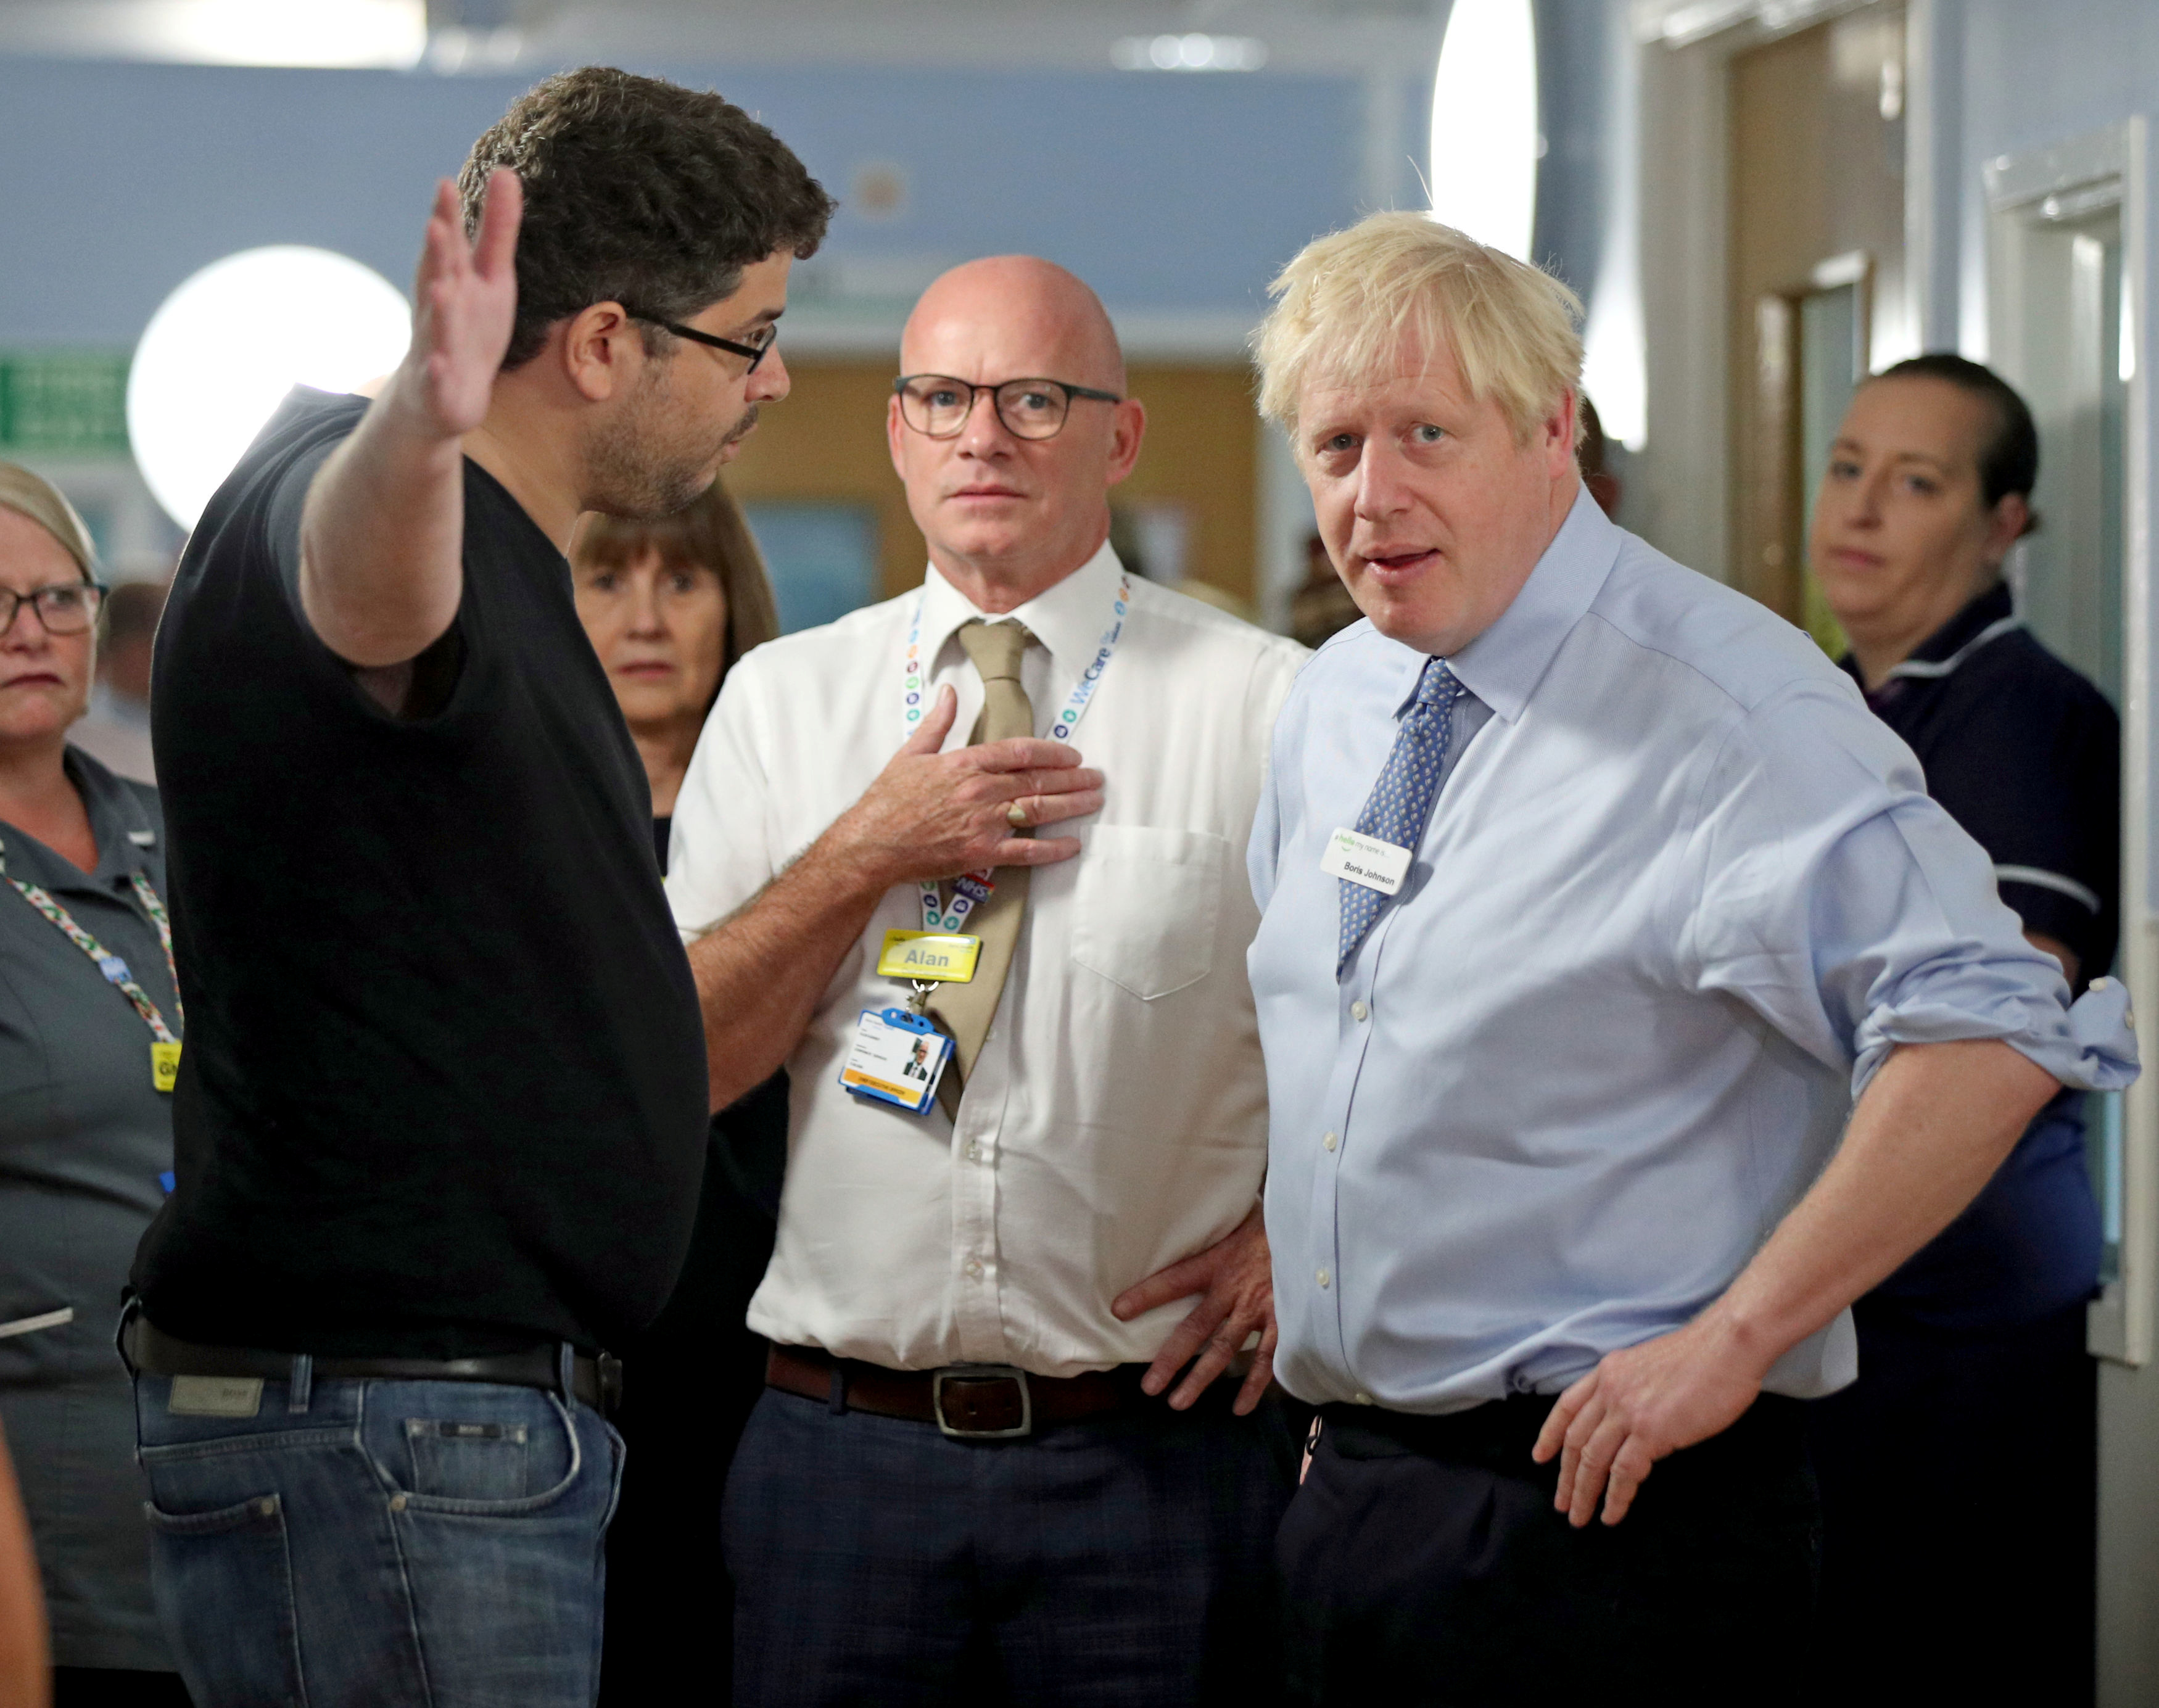 British PM Johnson confronted at a hospital by parent of sick child